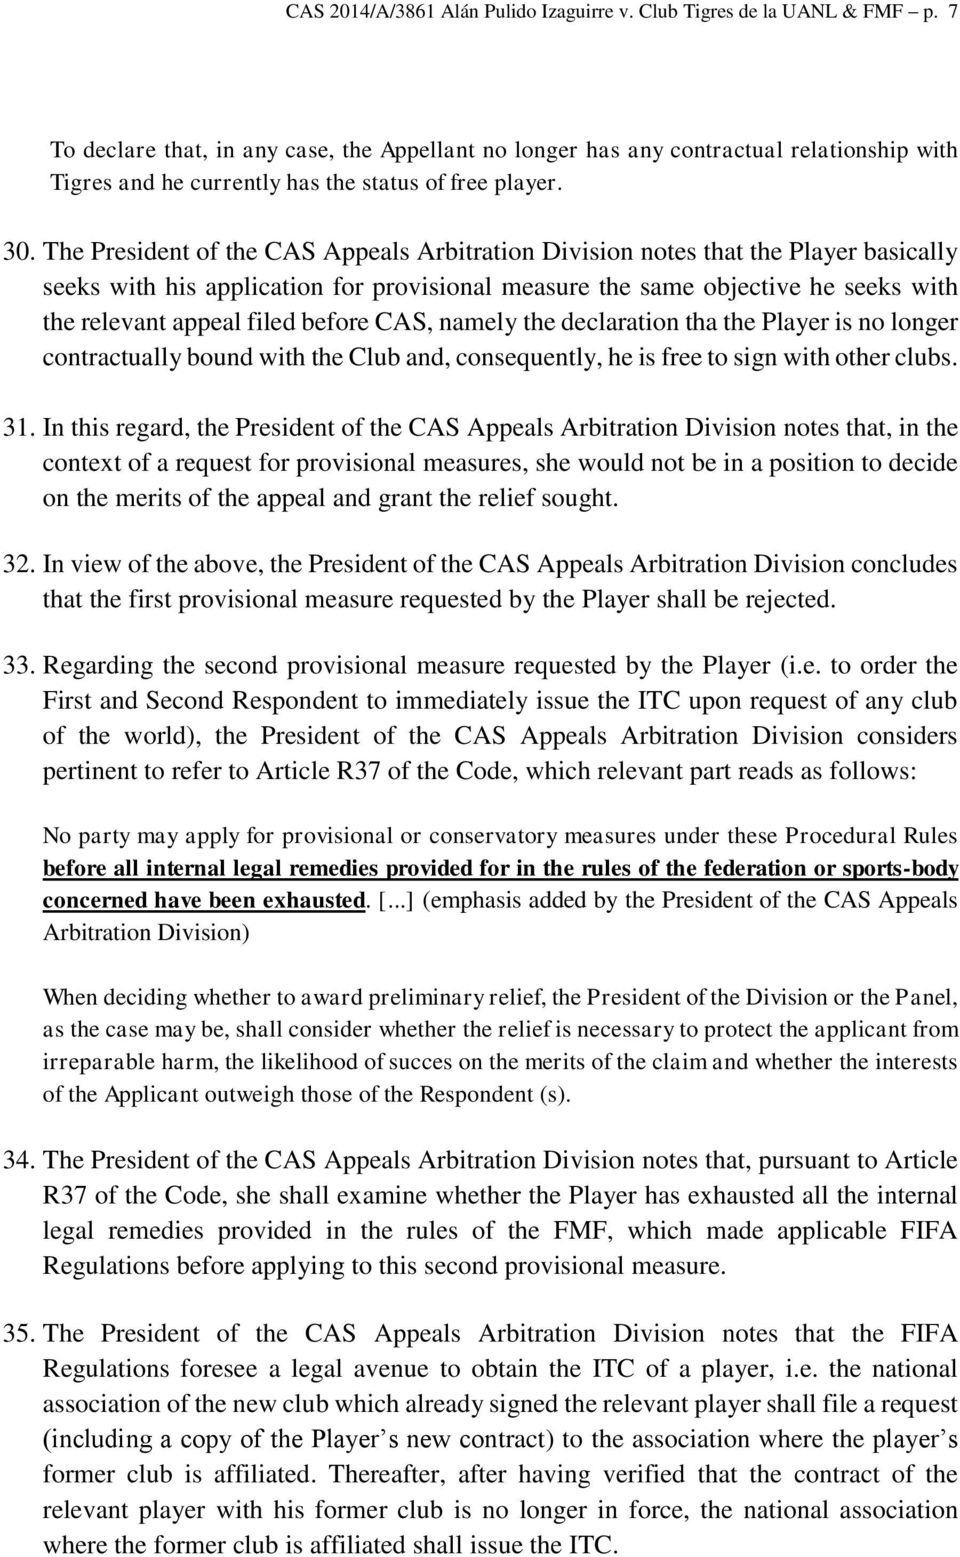 The President of the CAS Appeals Arbitration Division notes that the Player basically seeks with his application for provisional measure the same objective he seeks with the relevant appeal filed